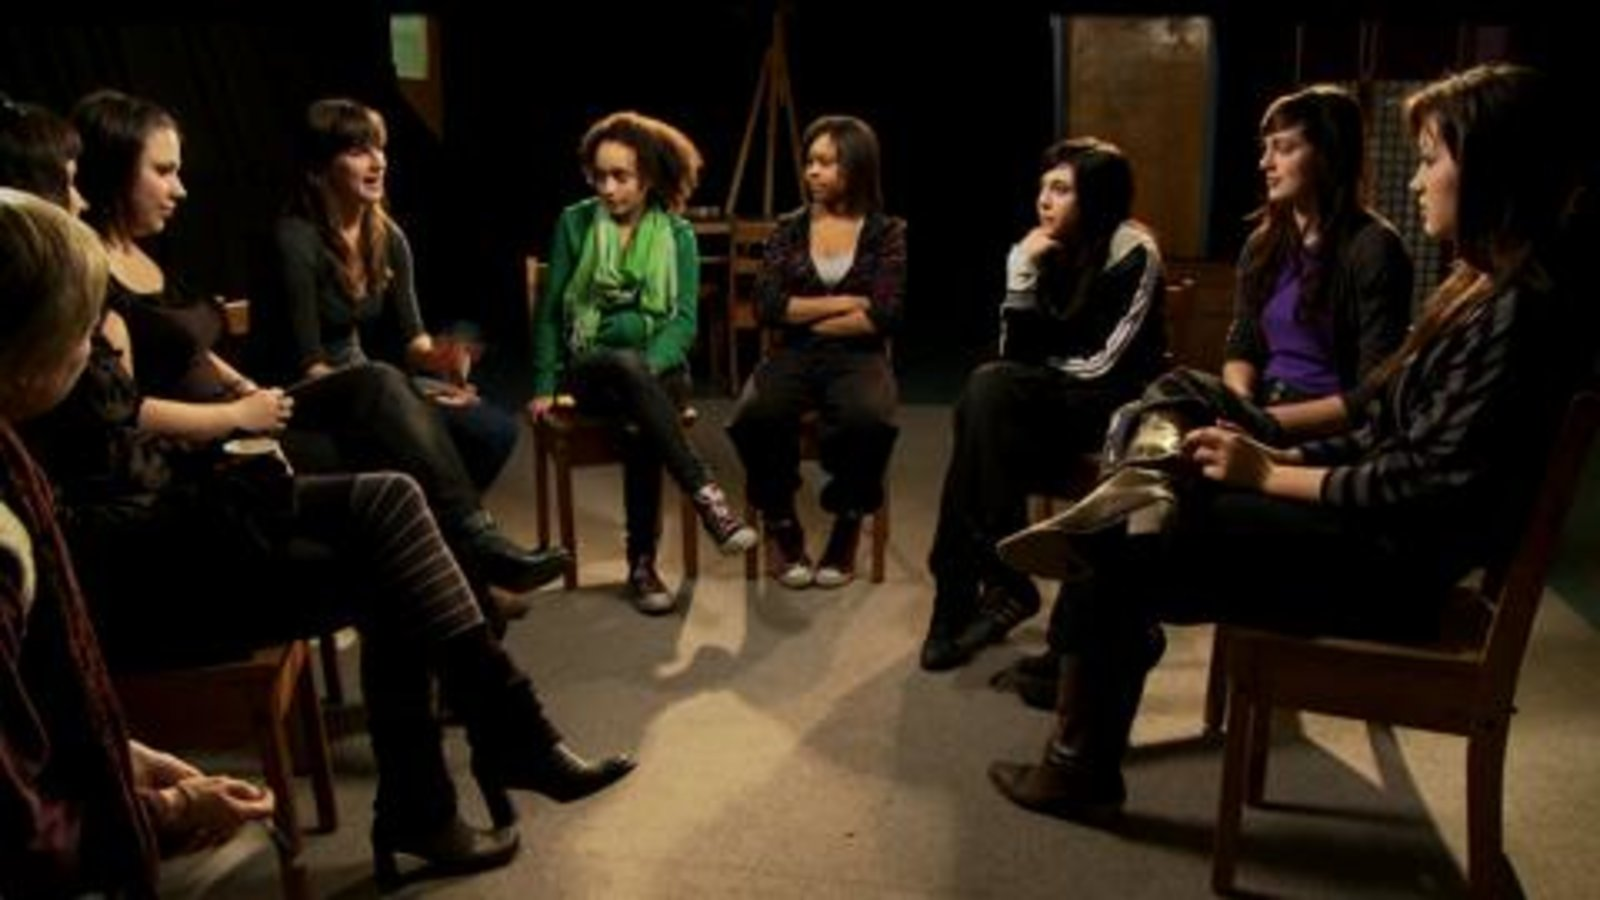 Staying Real - Teens Confront Sexual Stereotype